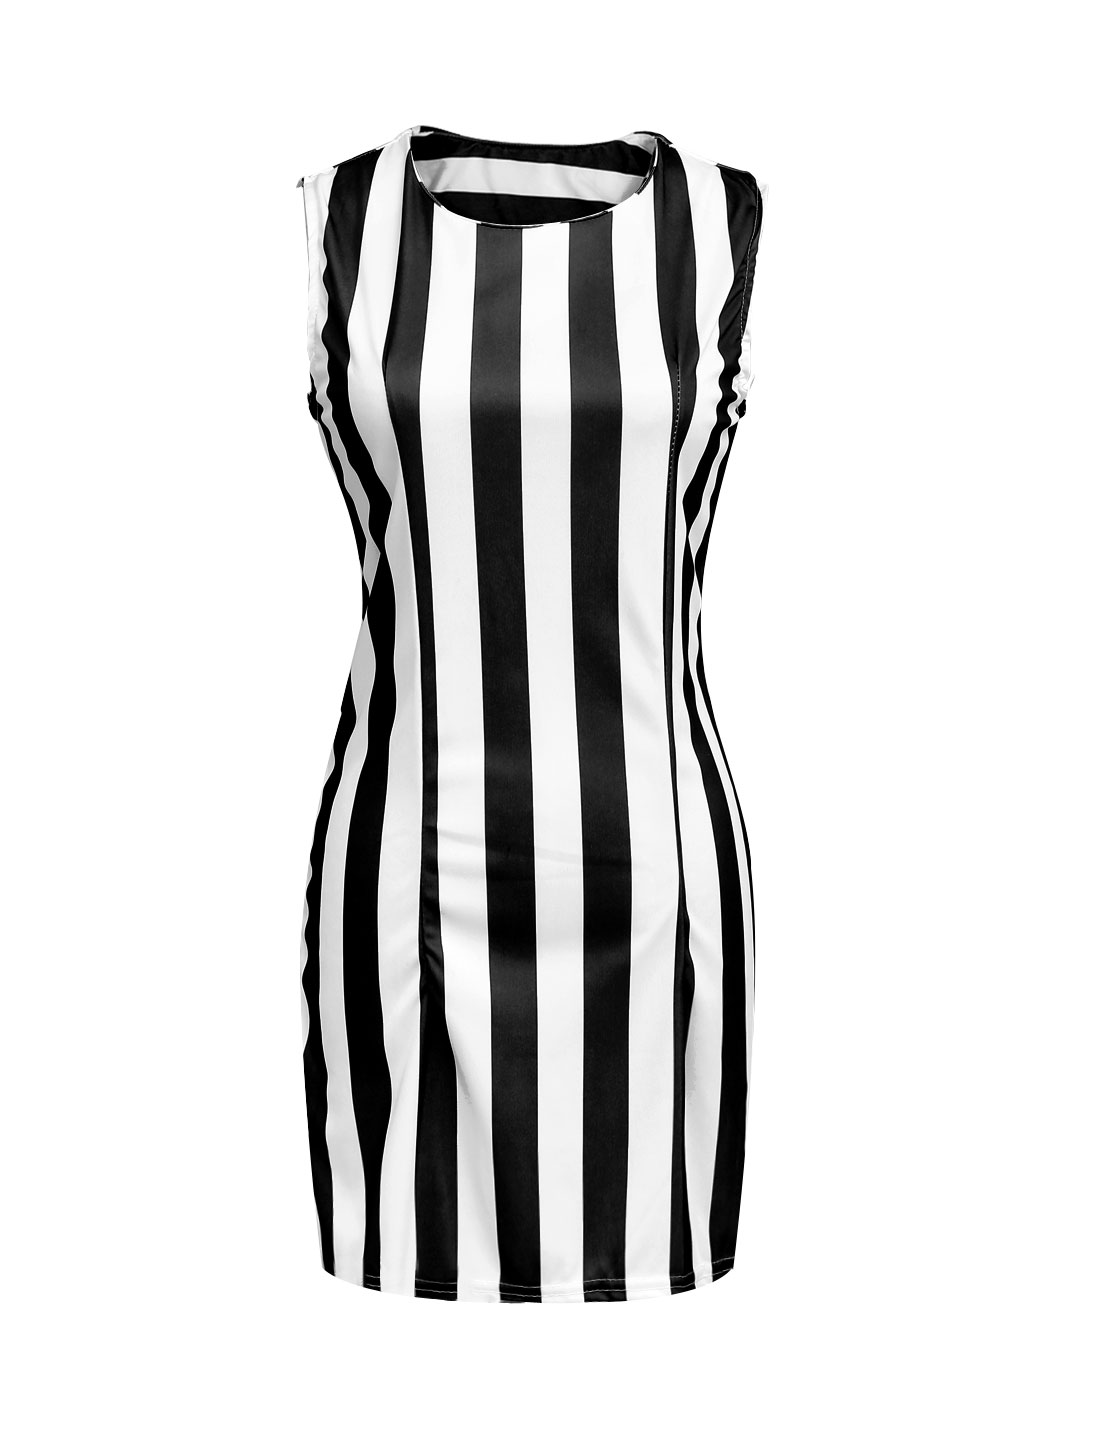 Lady Vertical Stripes Round Neck Above Knee Sheath Dress Black White L